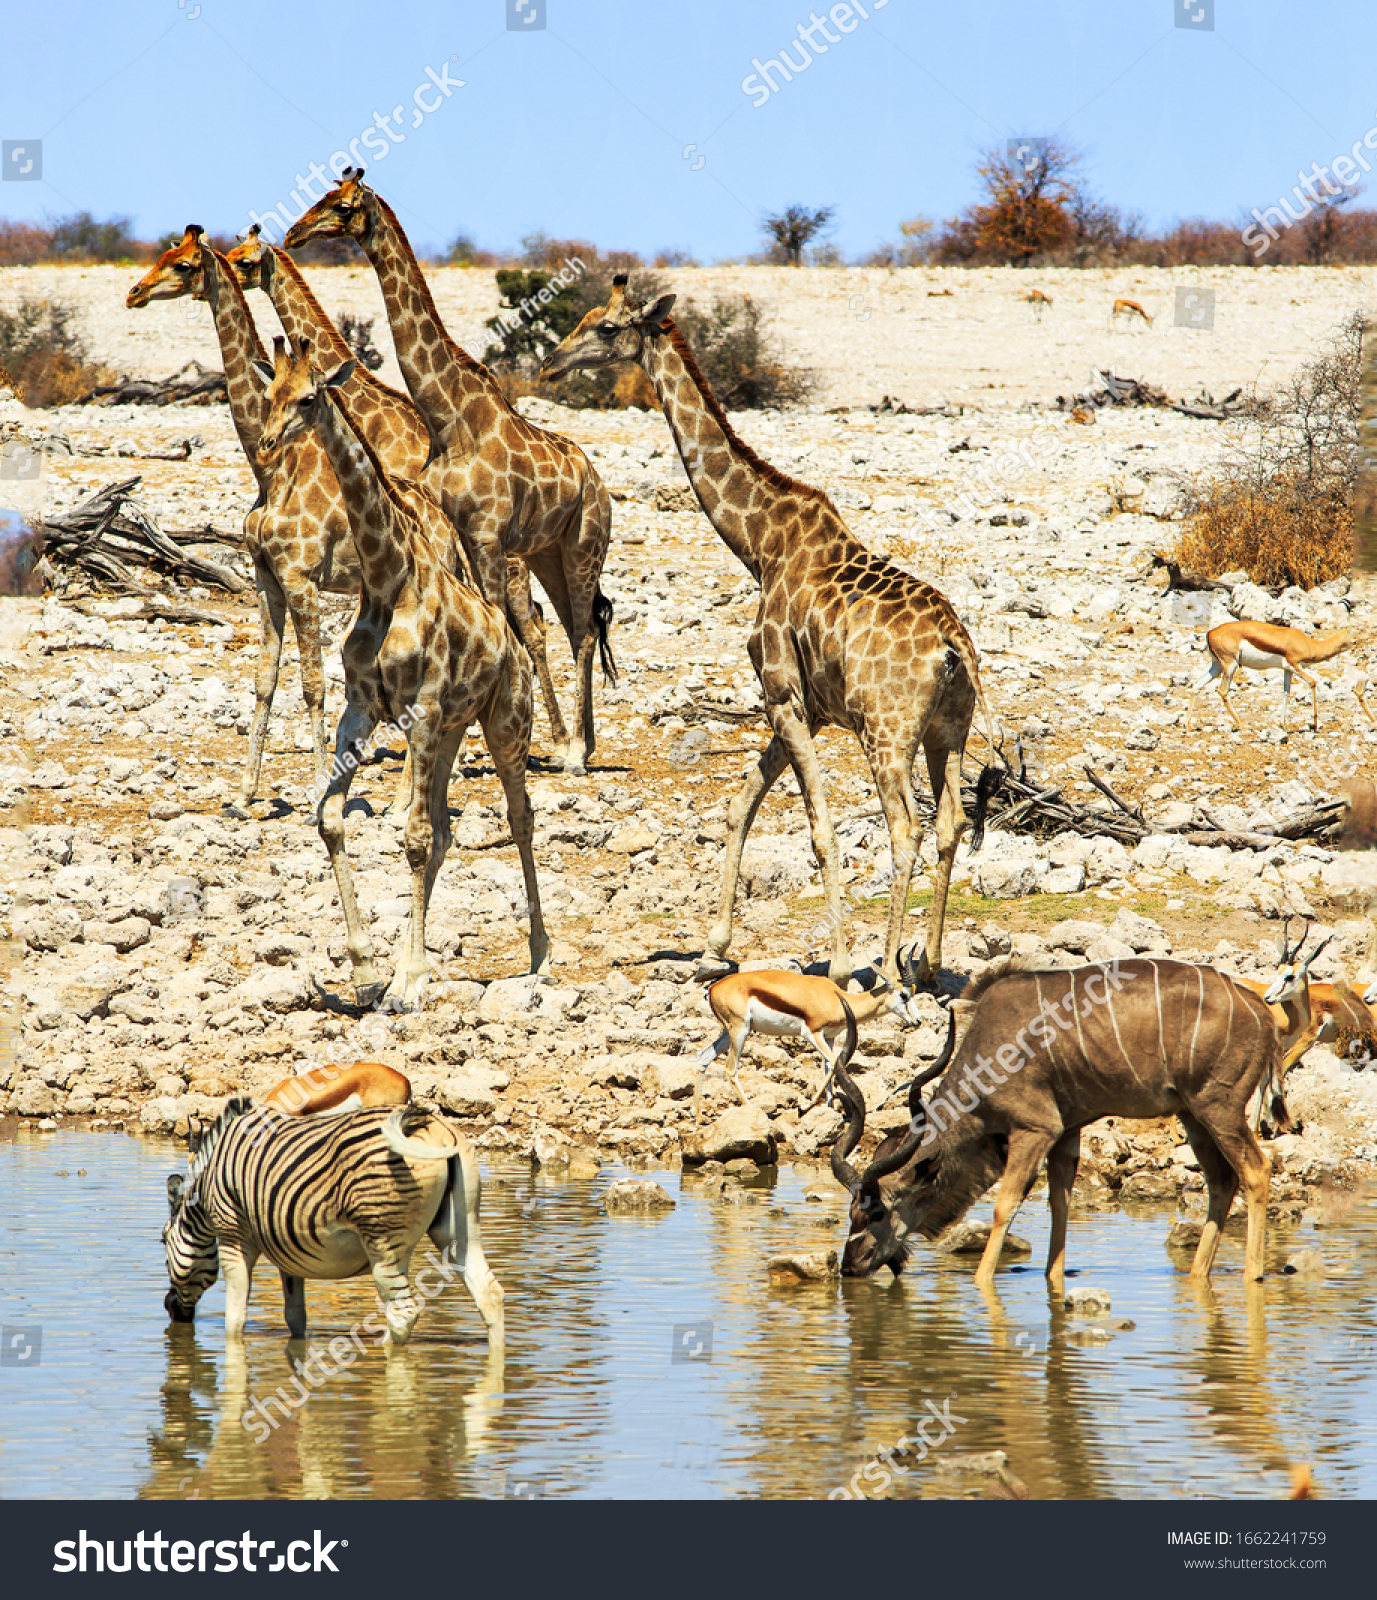 Tower of Giraffe at a waterhole, with zebra, Kudu and impala in the foreground, and a dry rocky savannah and blue sky in the distance. Etosha National Park, Namibia